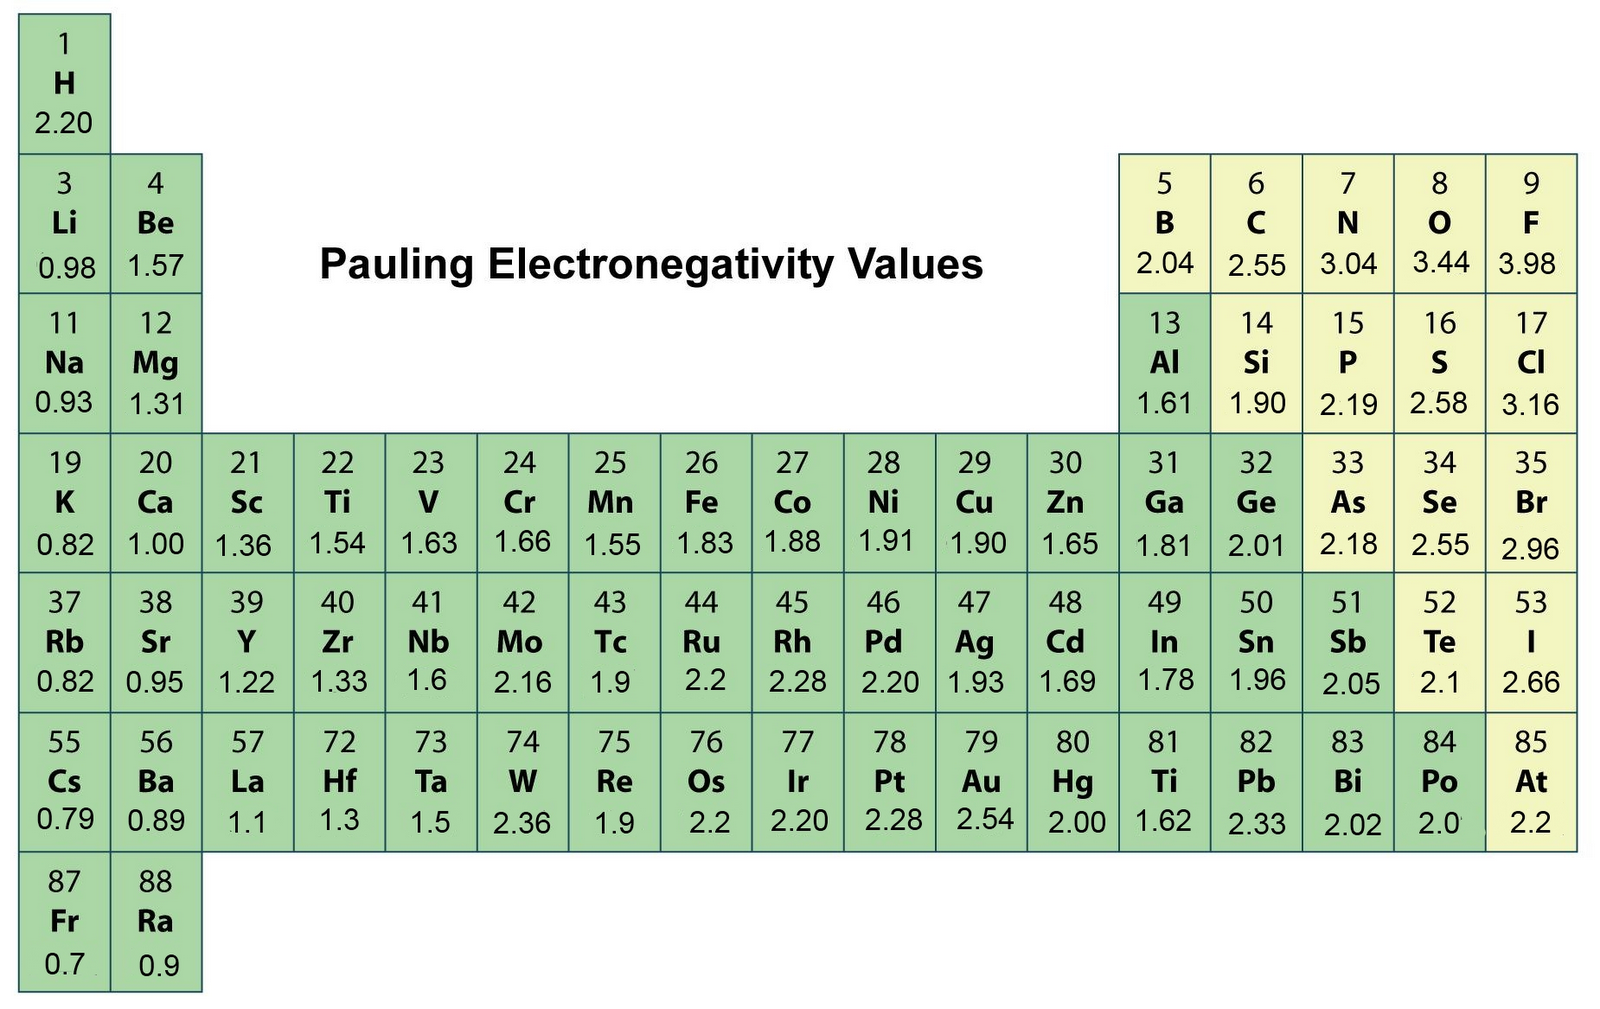 http://secrets-of-periodic-table.blogspot.com/2012_09_01_archive.html